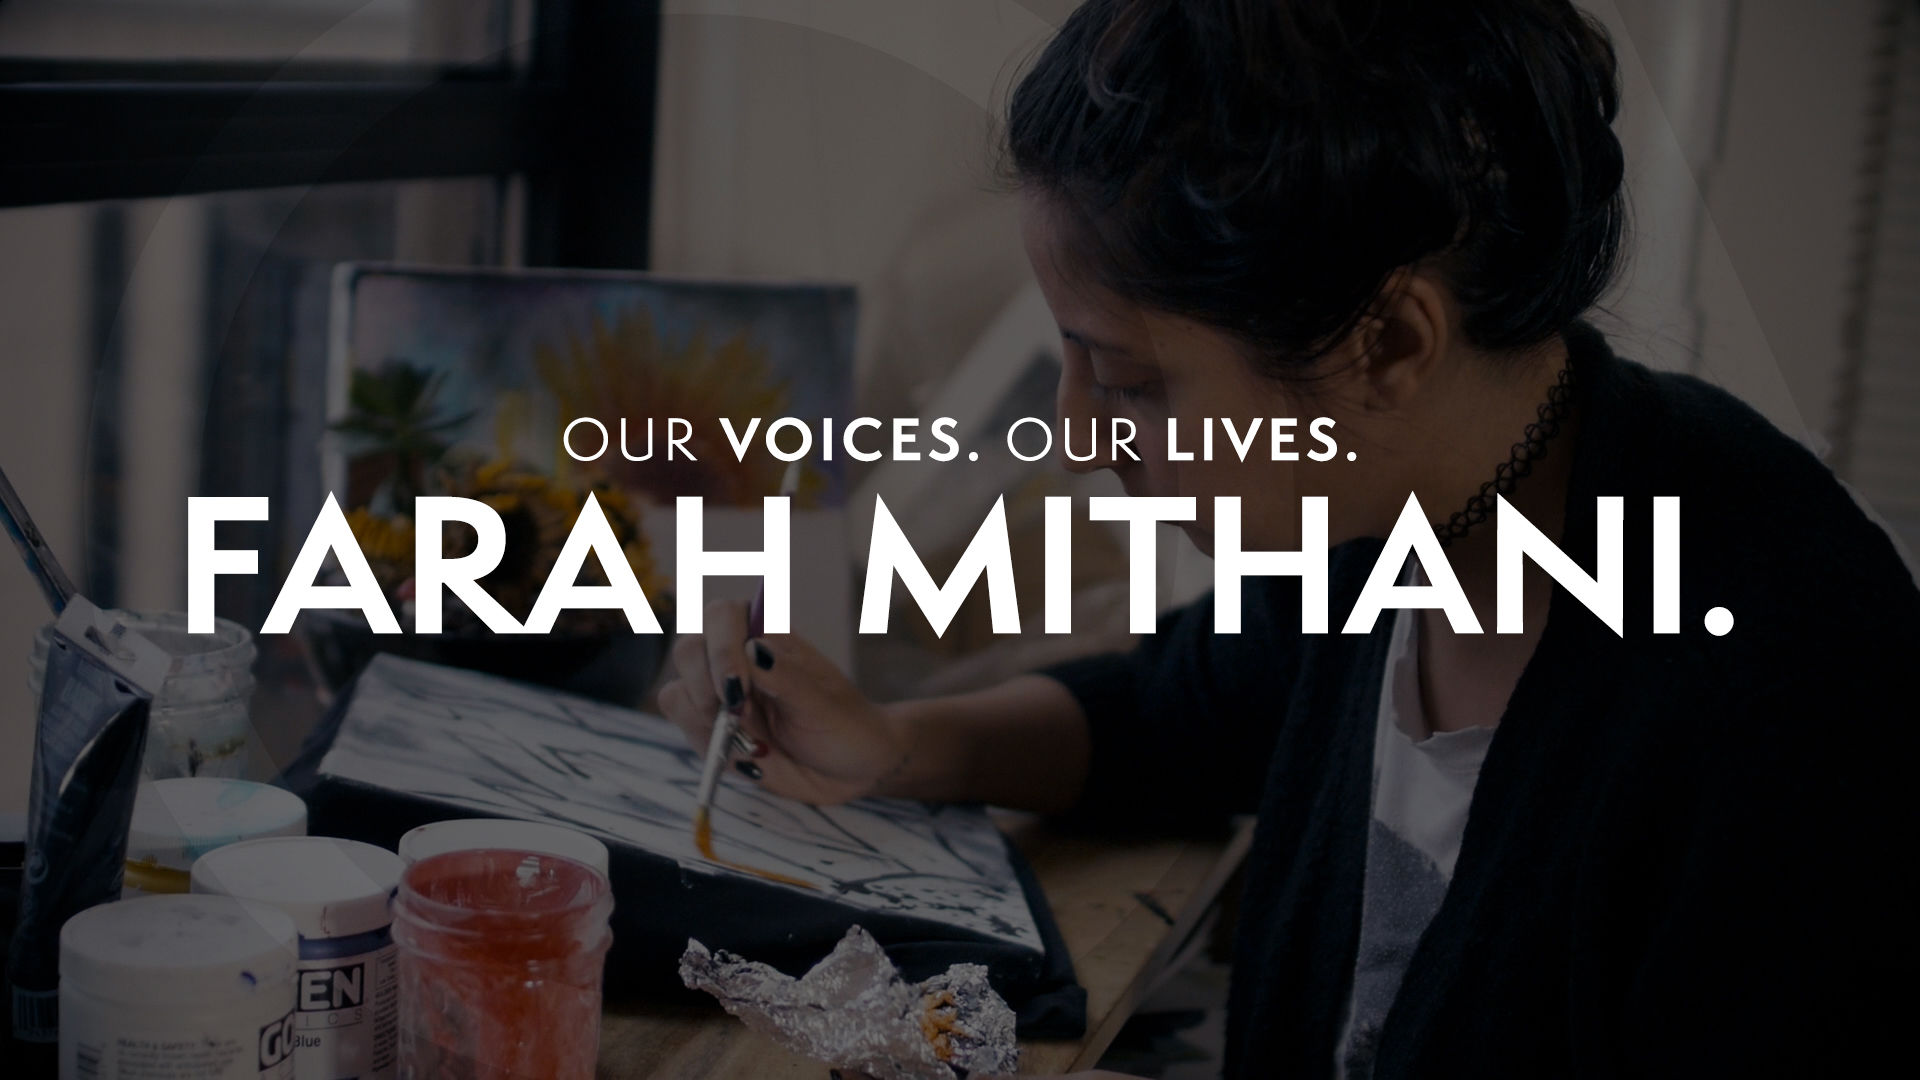 Our Voices. Our Lives. presents FARAH MITHANI.